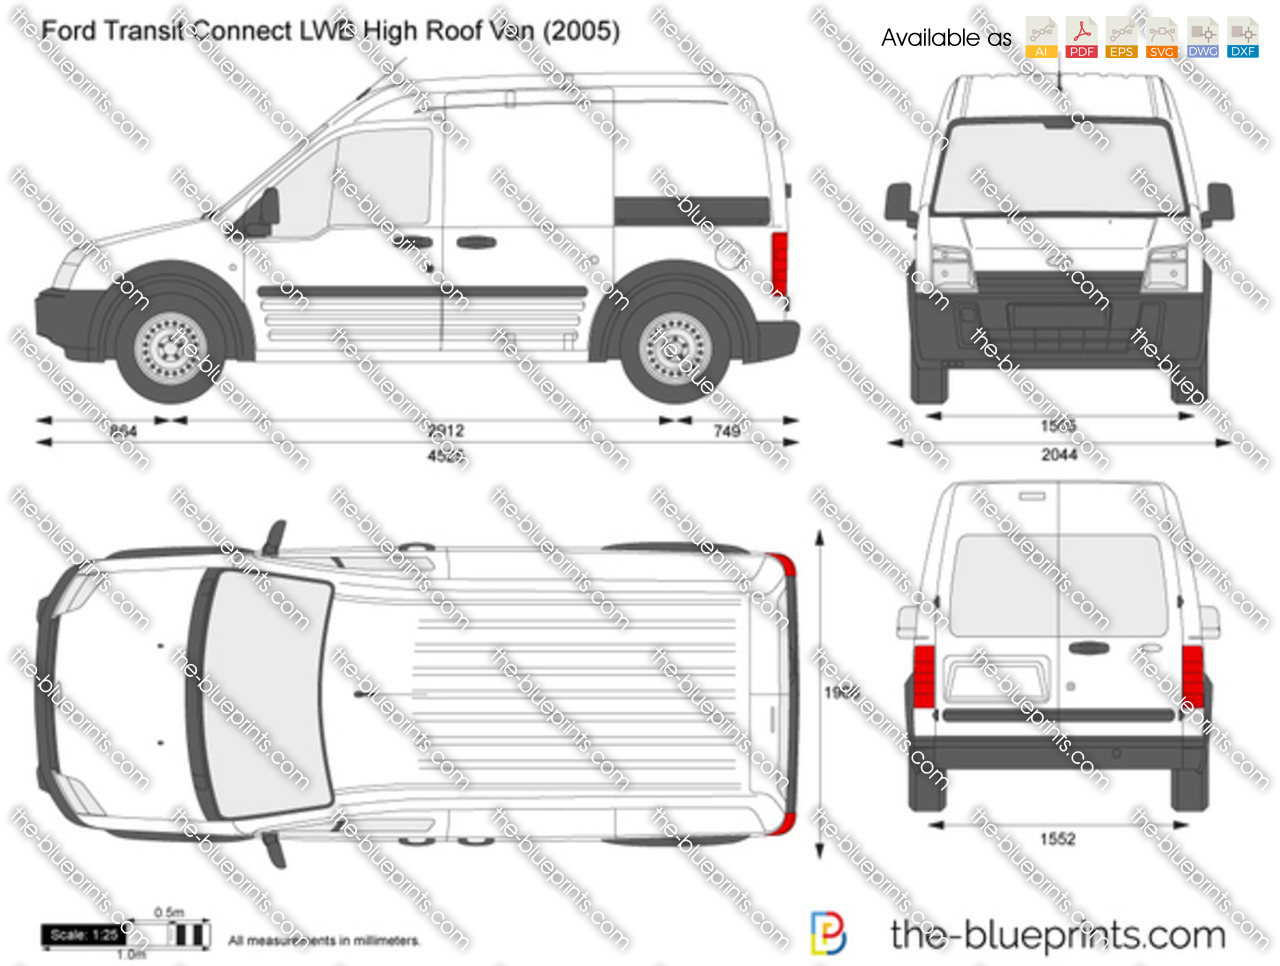 a6469cadd0 Ford Transit Connect LWB High Roof Van vector drawing